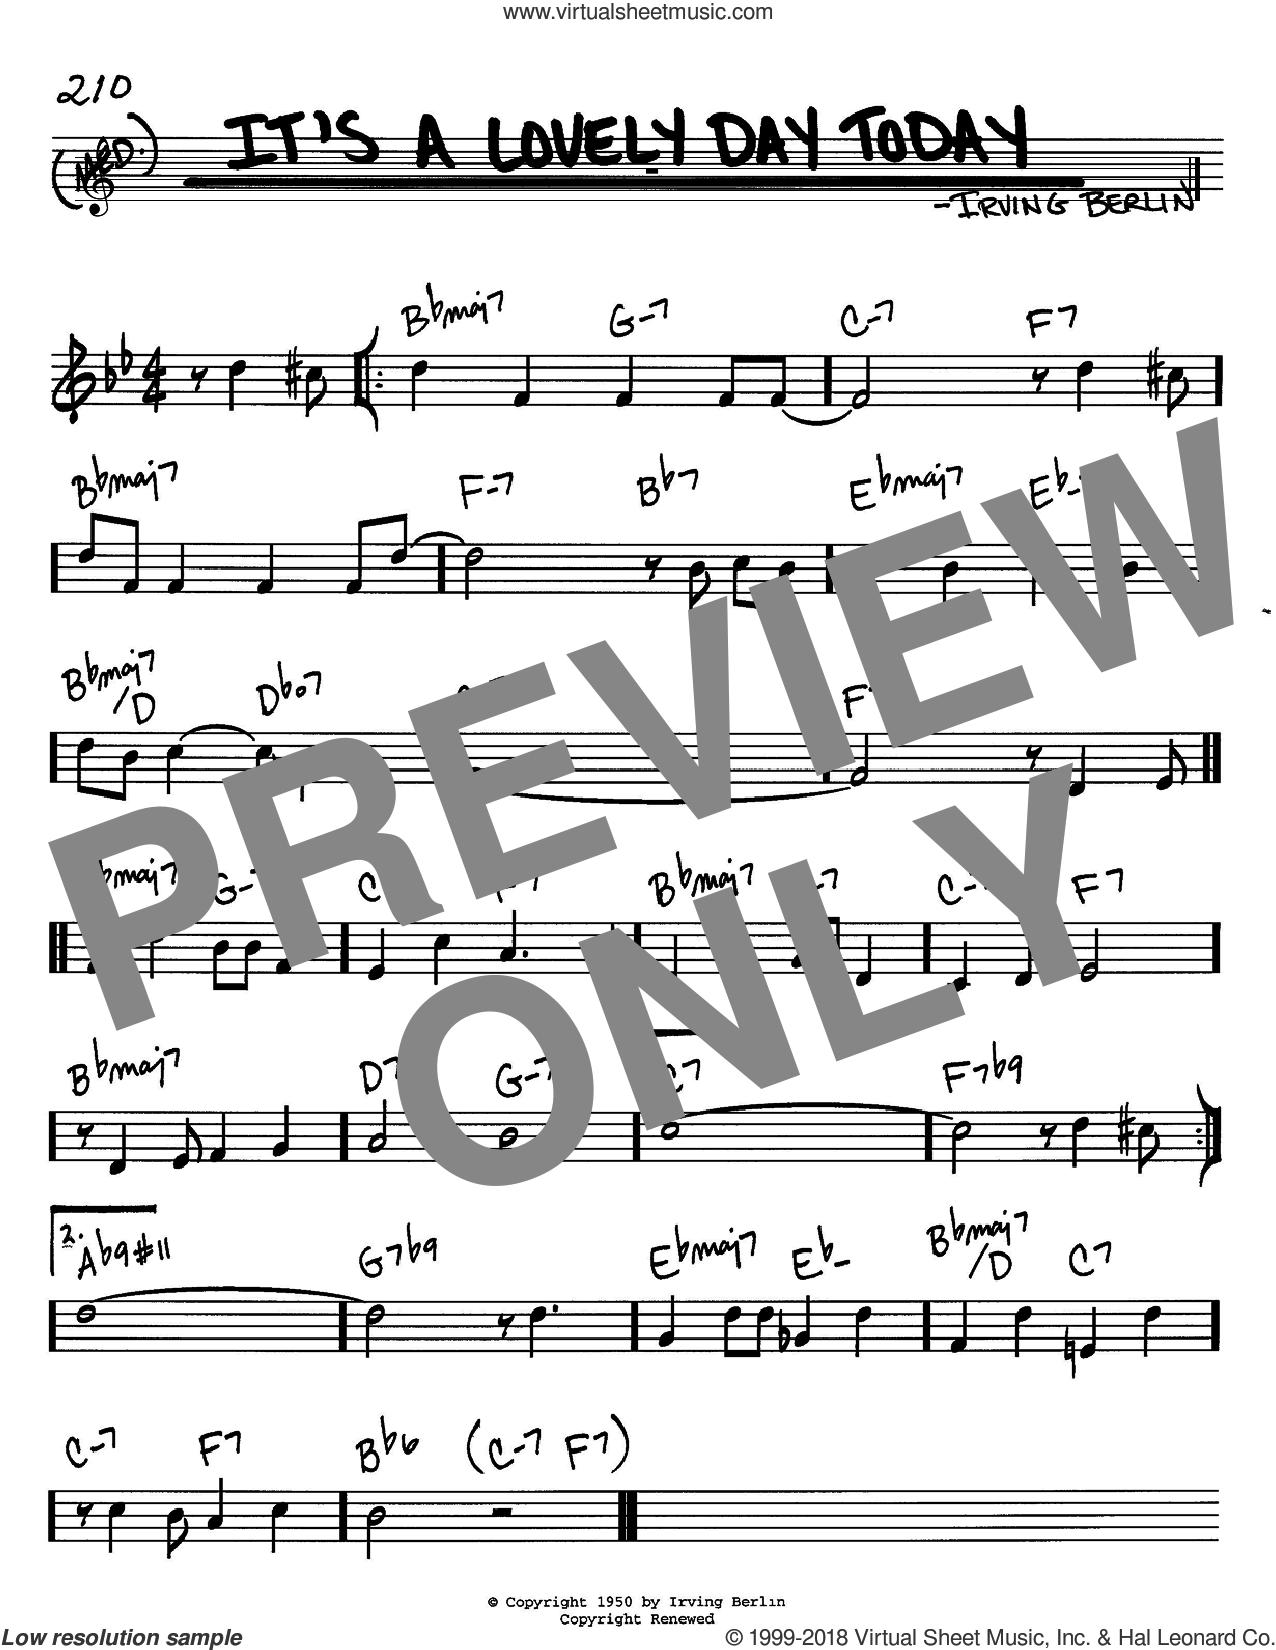 It's A Lovely Day Today sheet music for voice and other instruments (in C) by Irving Berlin, intermediate skill level